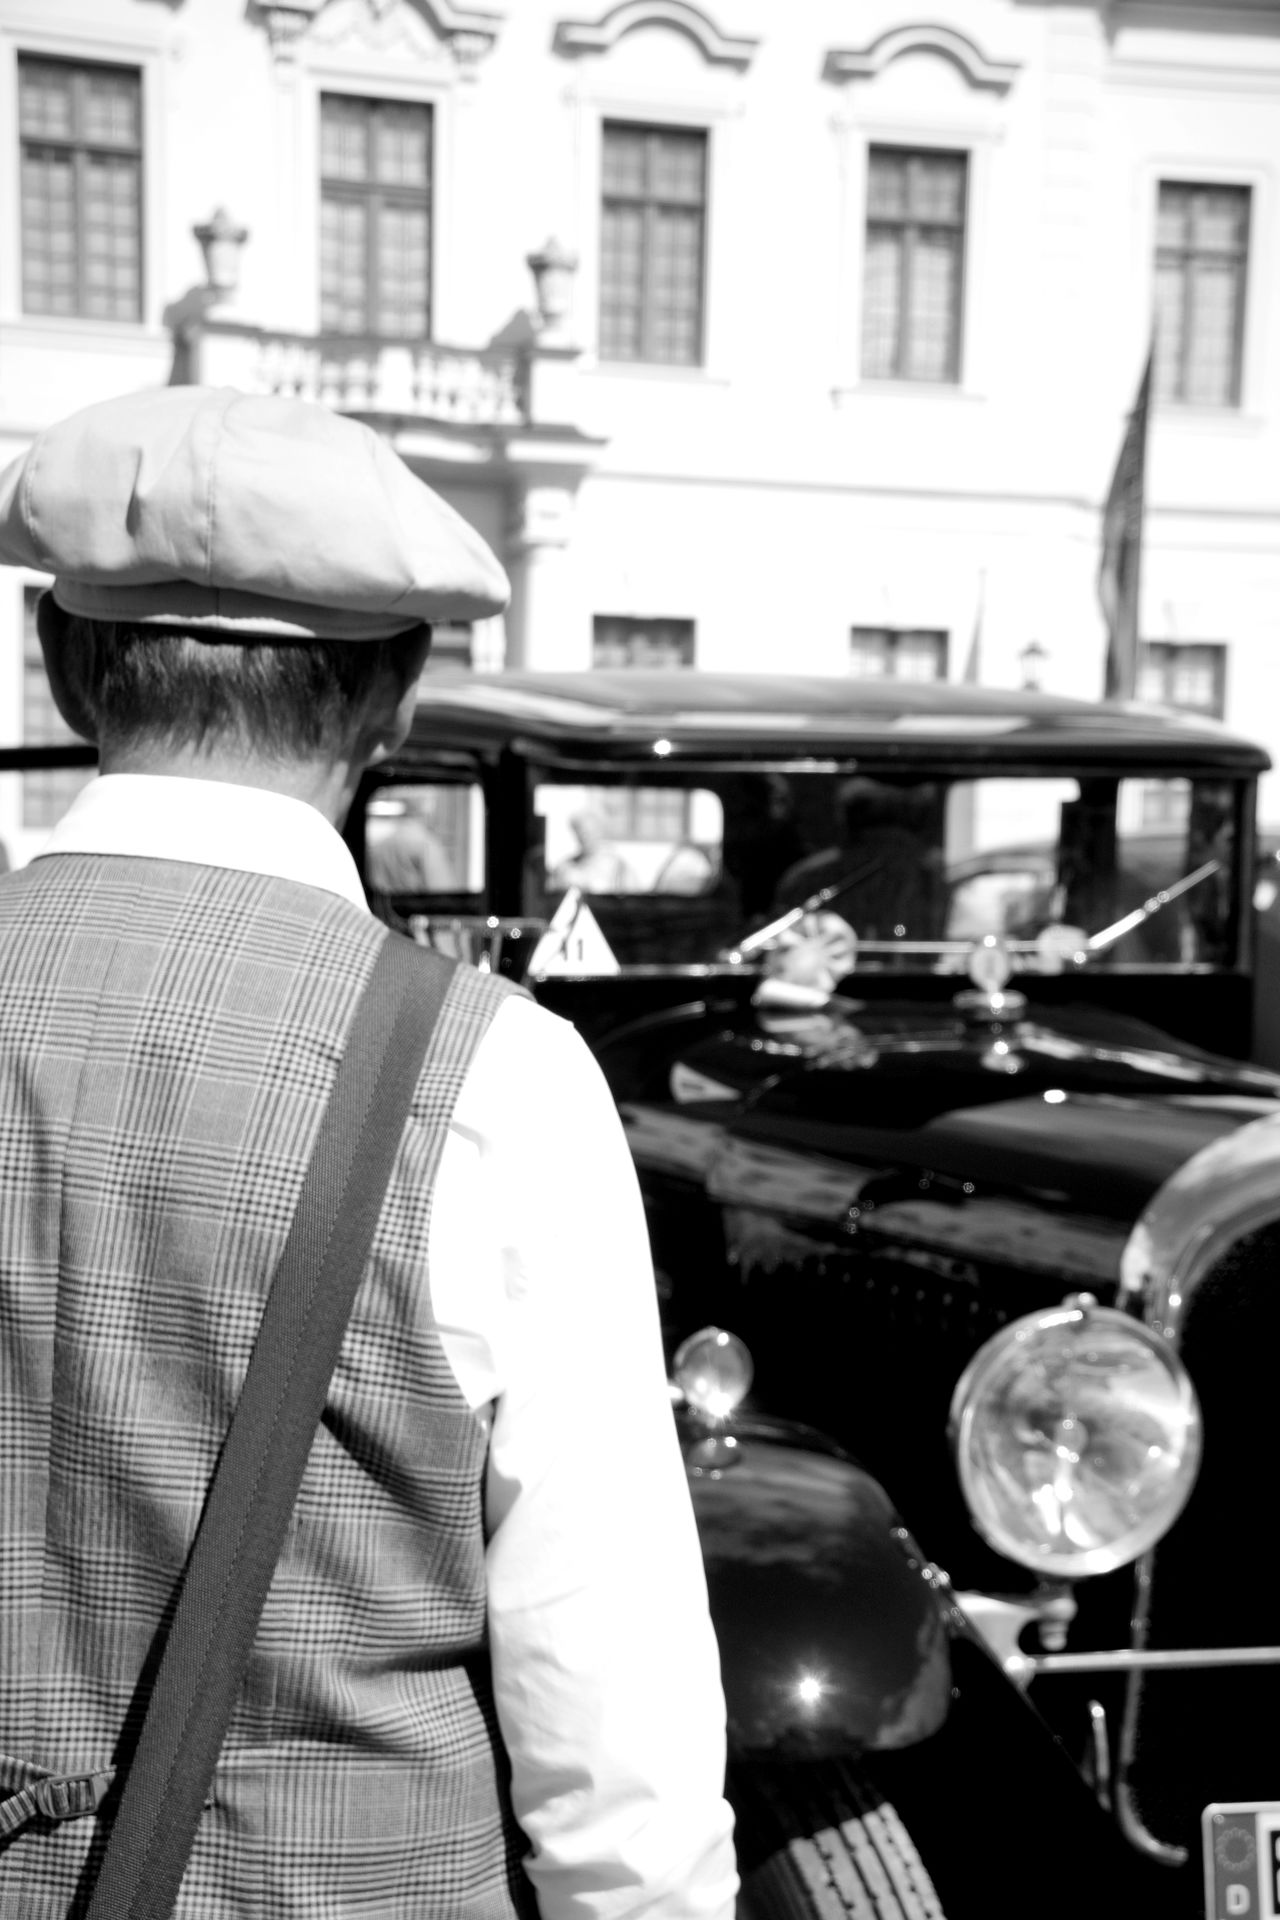 20s Car Admire Adore Black Car Car Show Castle Casual Clothing Classic Car Dandy Focus On Foreground Lifestyles Mein Automoment Olditimer Retro Classics The Drive